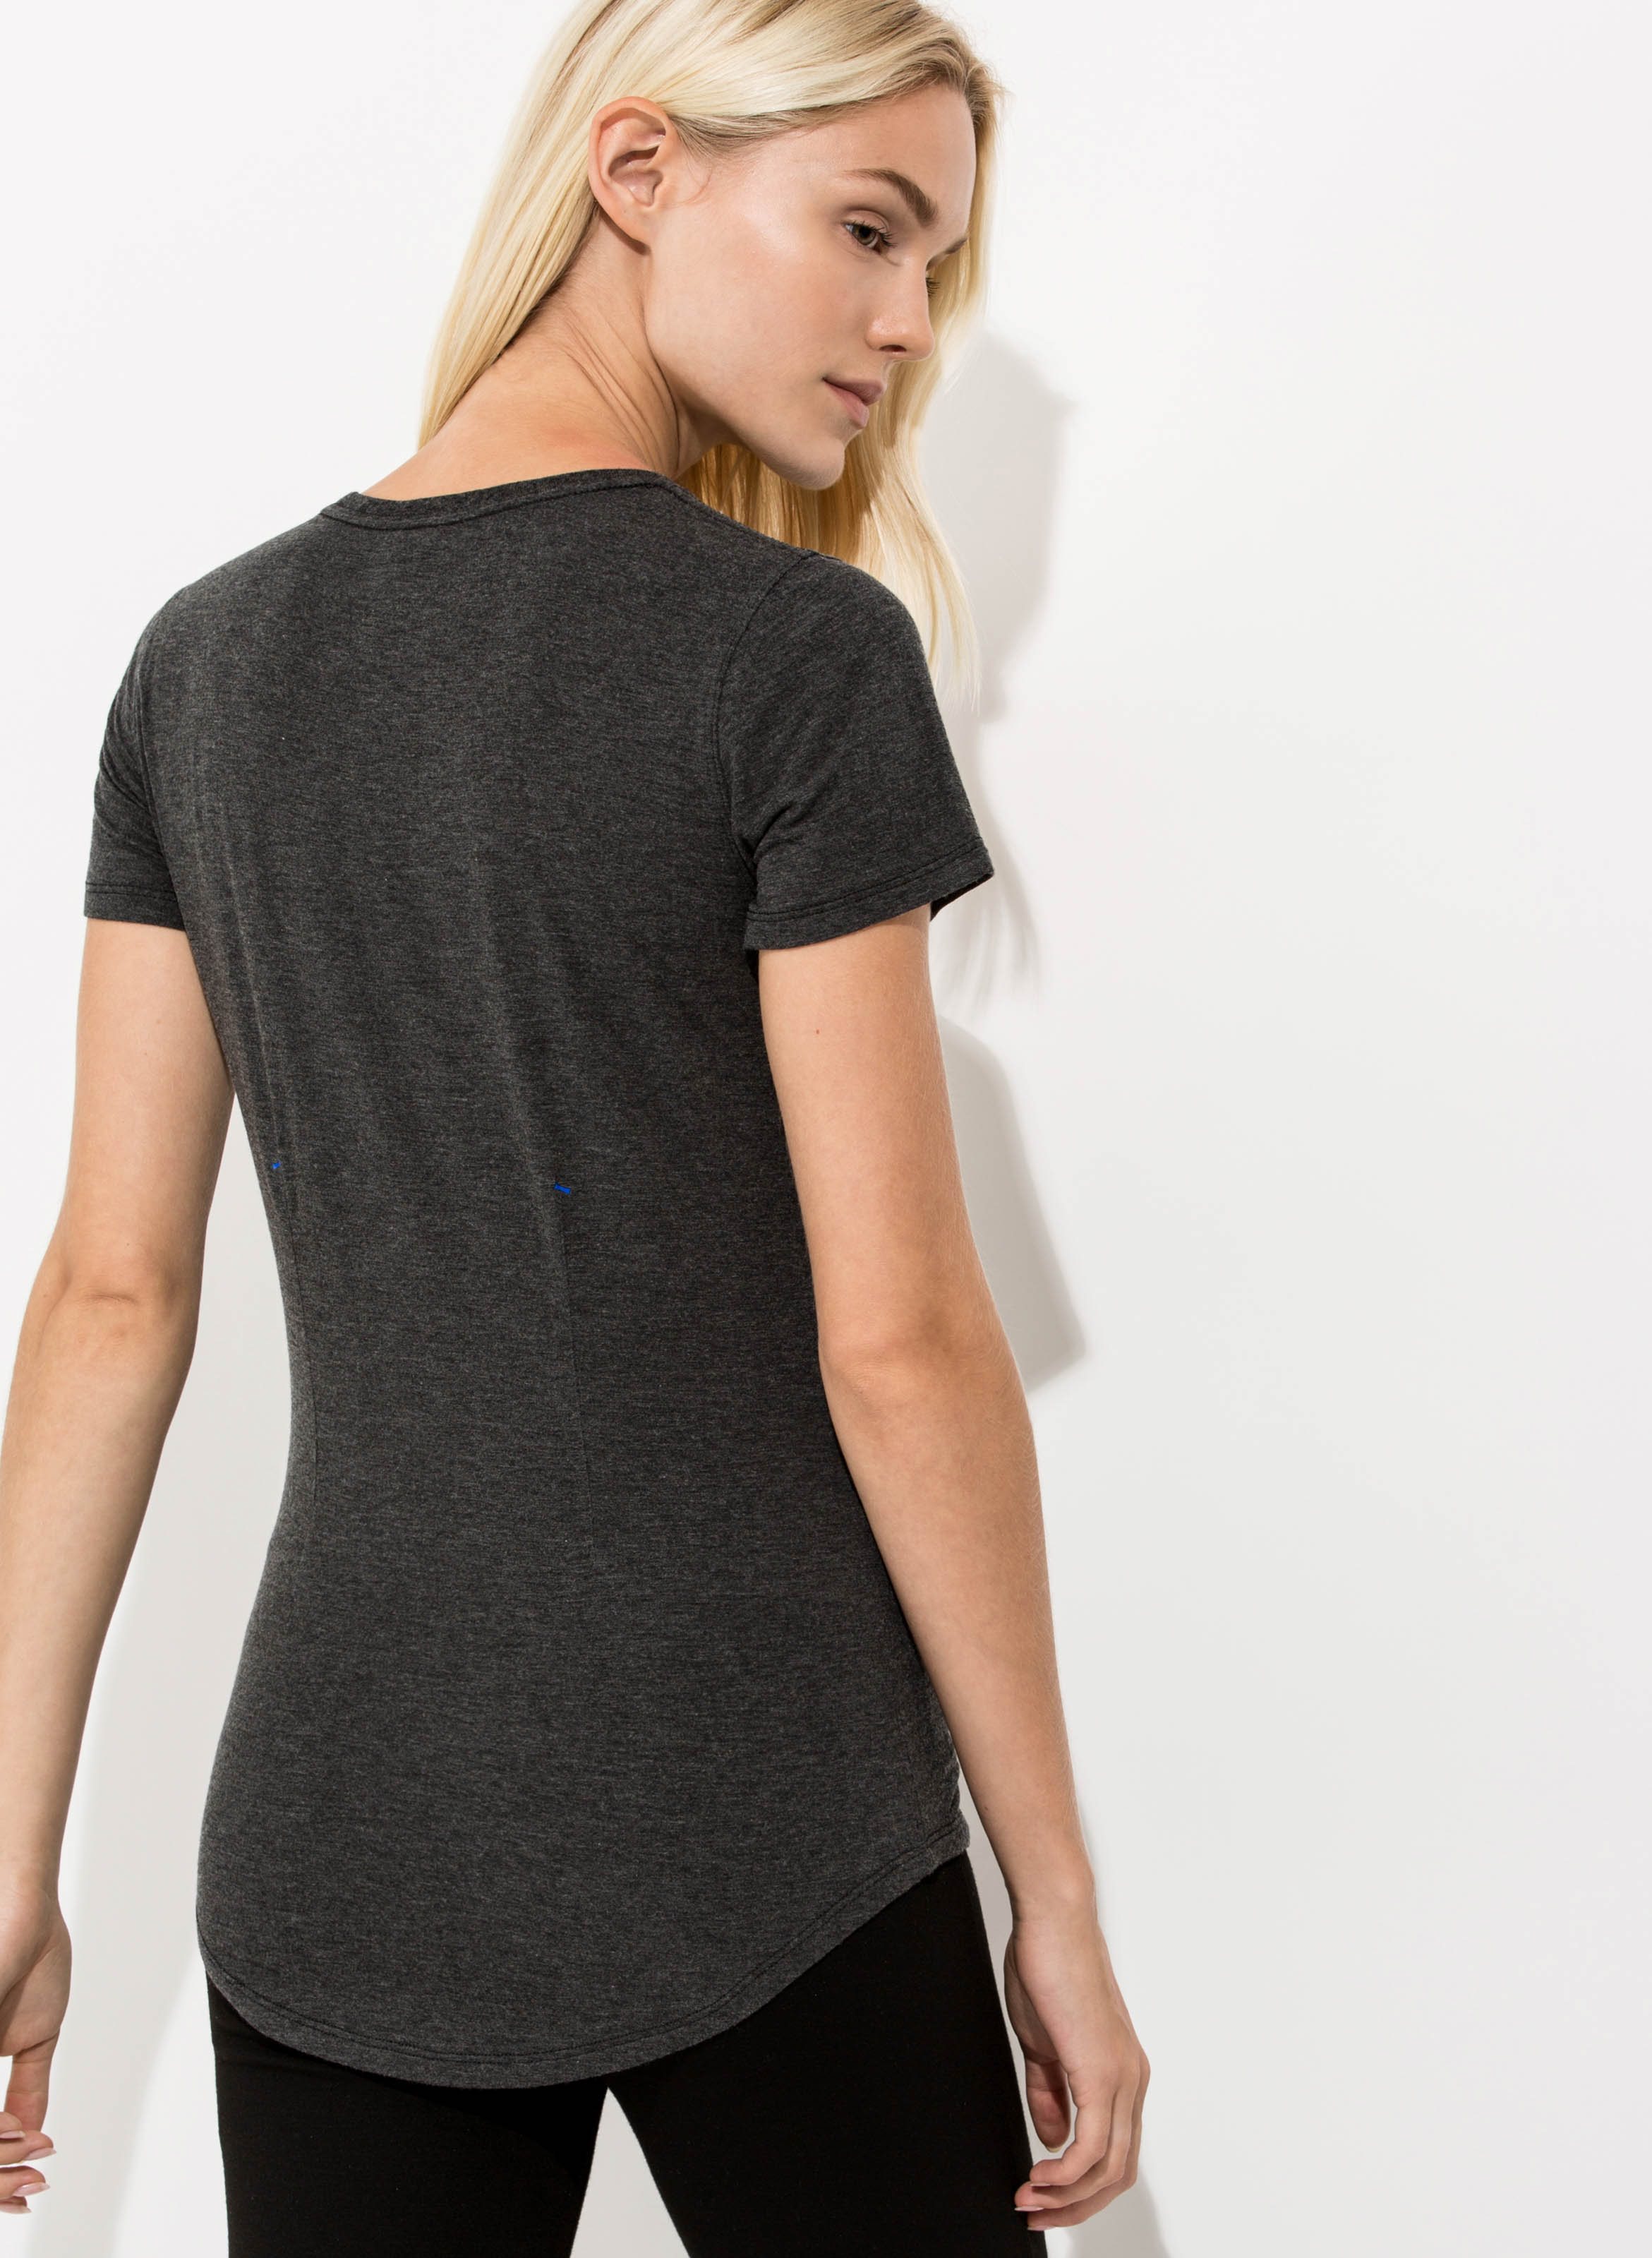 Kit & Ace Kaye T-shirt in Heather Charcoal